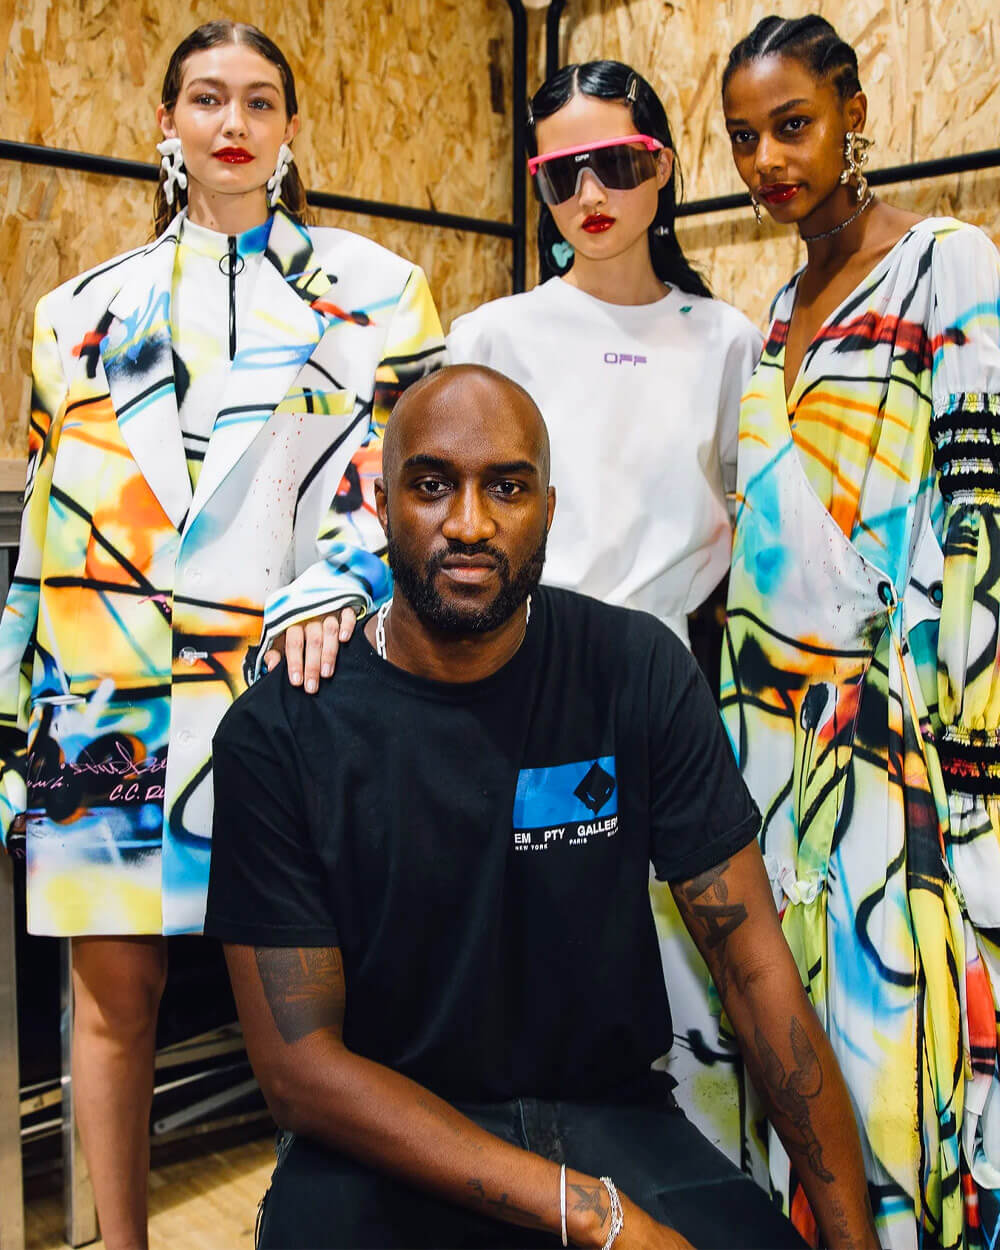 Off-white founder Virgil Abloh with Gigi Hadid